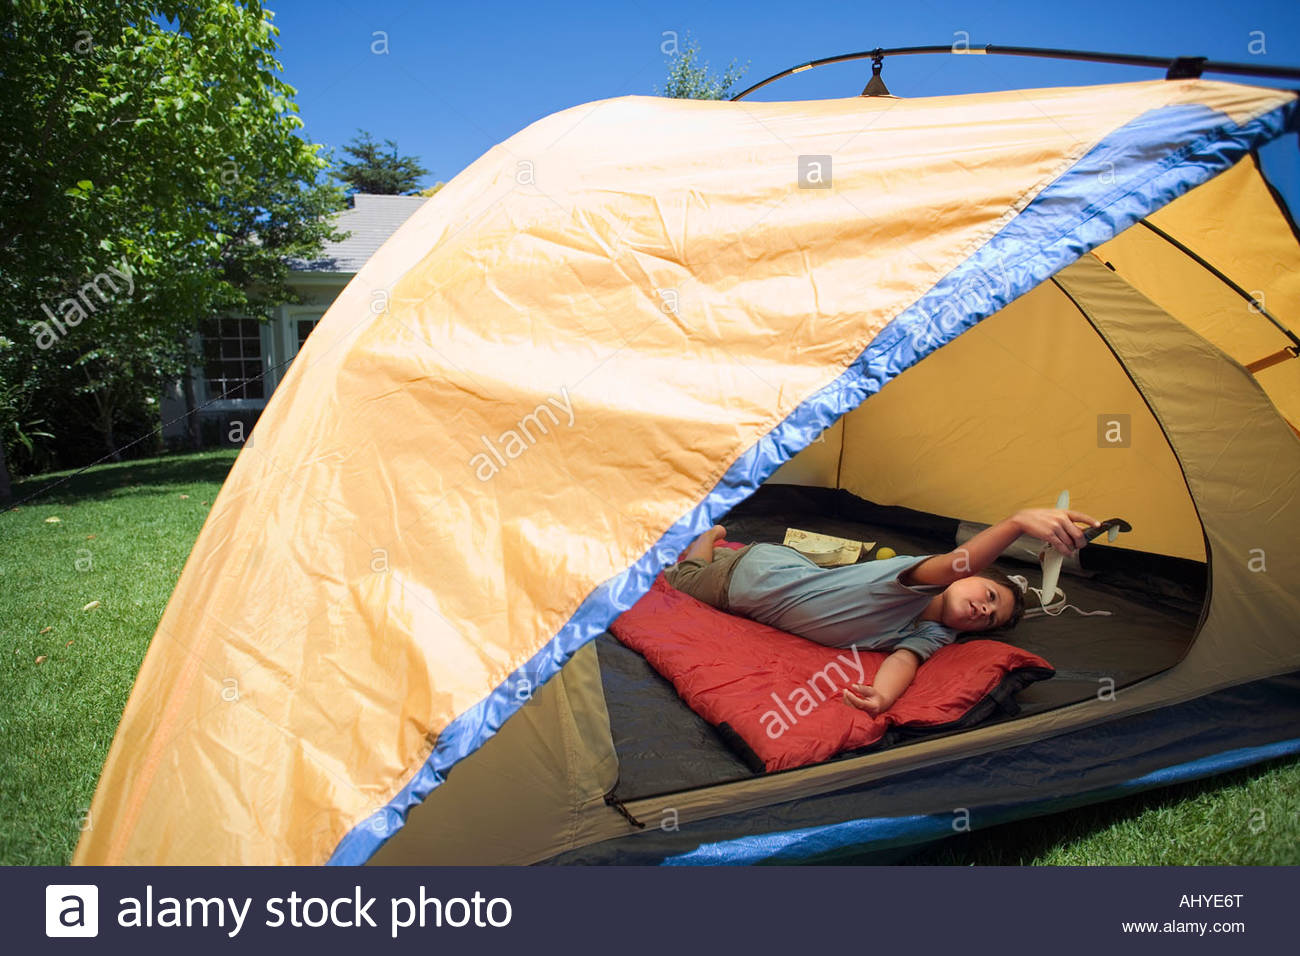 Boy 8 10 lying on red sleeping bag inside orange tent on garden lawn playing with toy aero plane rear view & Boy 8 10 lying on red sleeping bag inside orange tent on garden ...